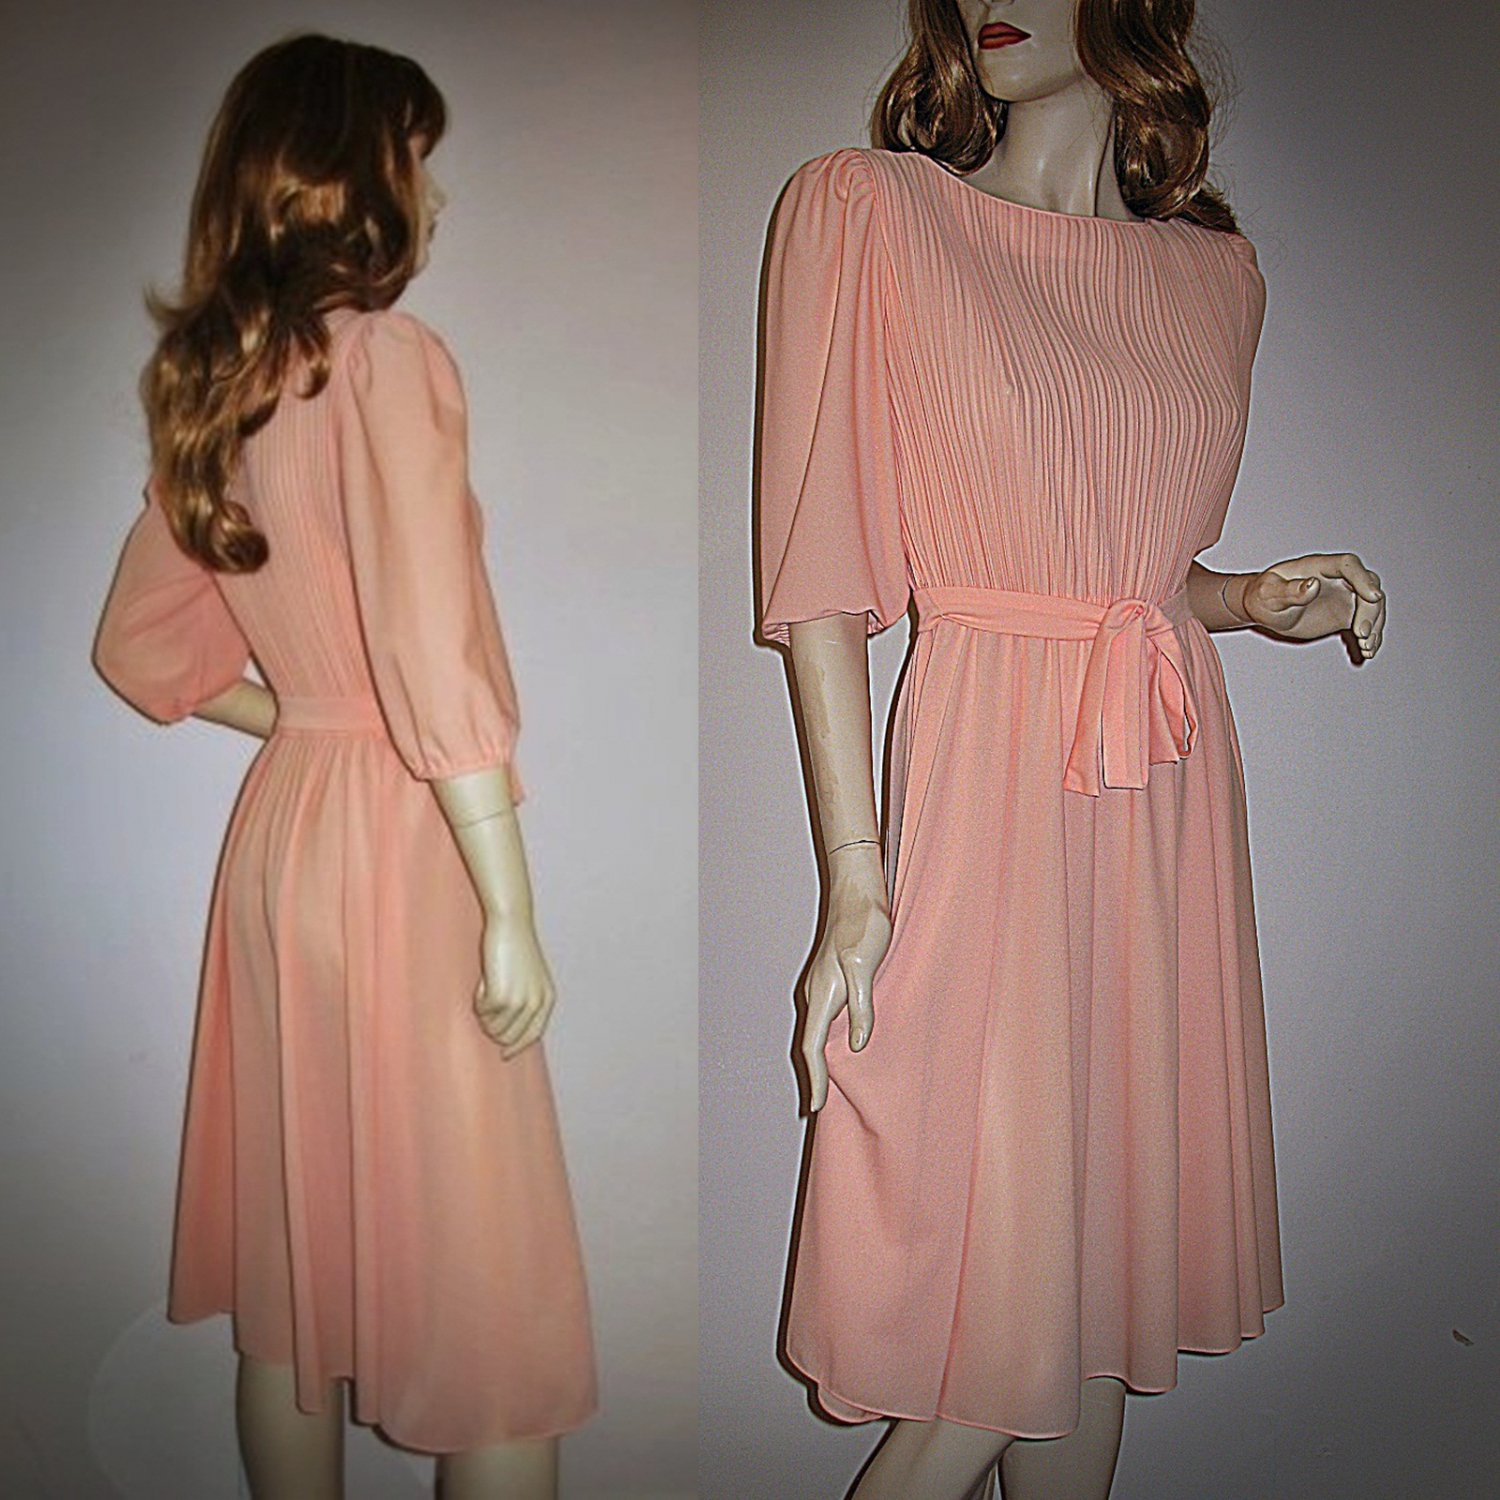 Vintage 70s Disco Dress Sheer Crepe Cystal Pleated Bodice Small S